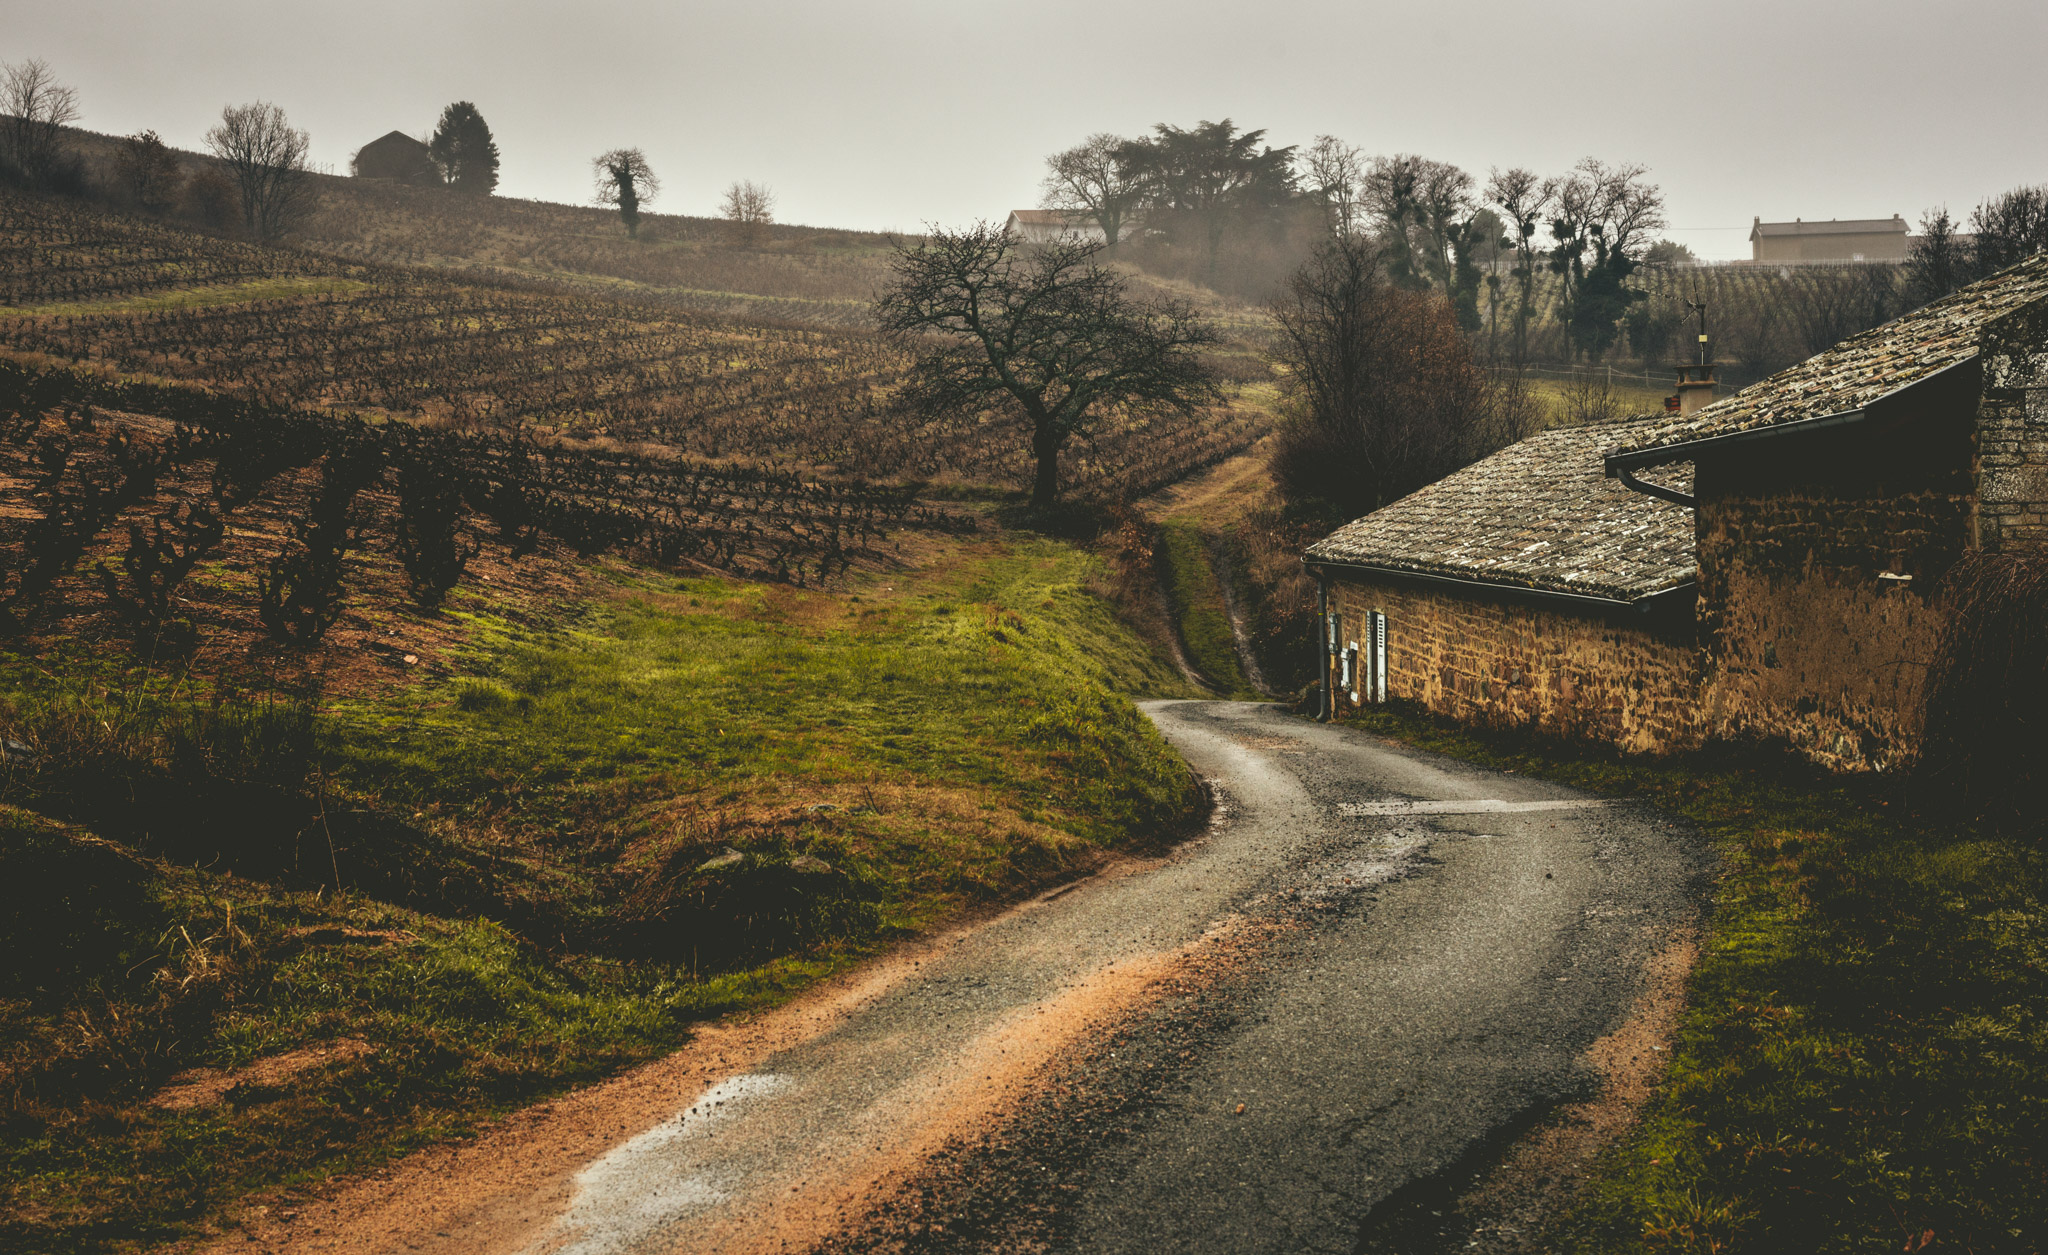 France : Beaujolais : A moody side of Beaujolais in the Cote de Brouilly